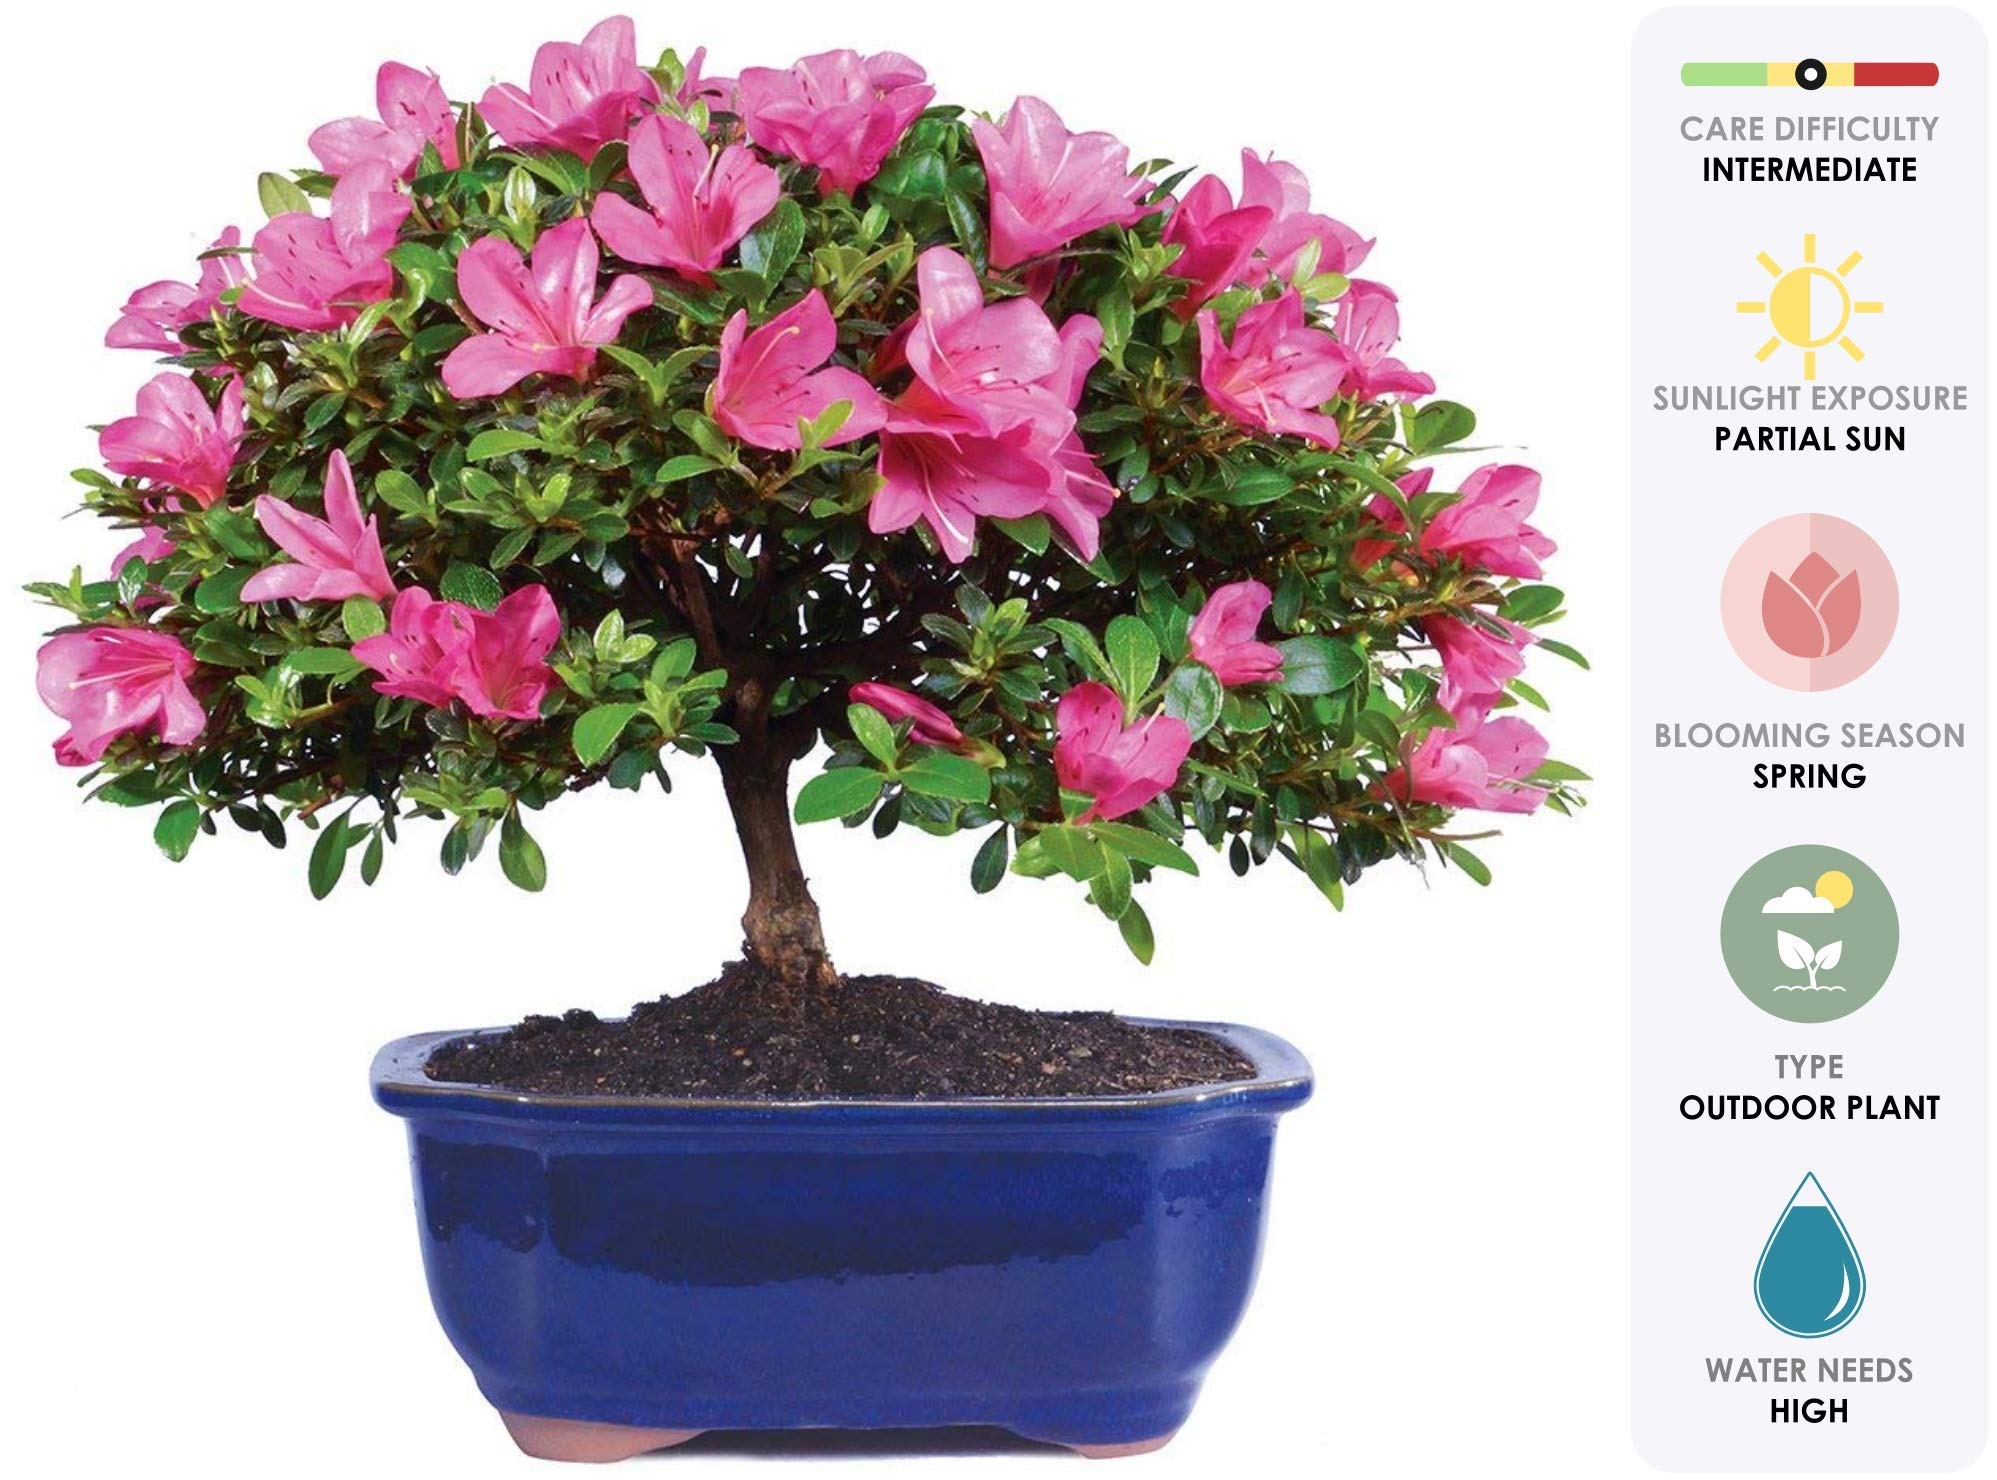 Brussel's Live Satsuki Azalea Outdoor Bonsai Tree - 8 Years Old; 12'' to 14'' Tall with Decorative Container by Brussel's Bonsai